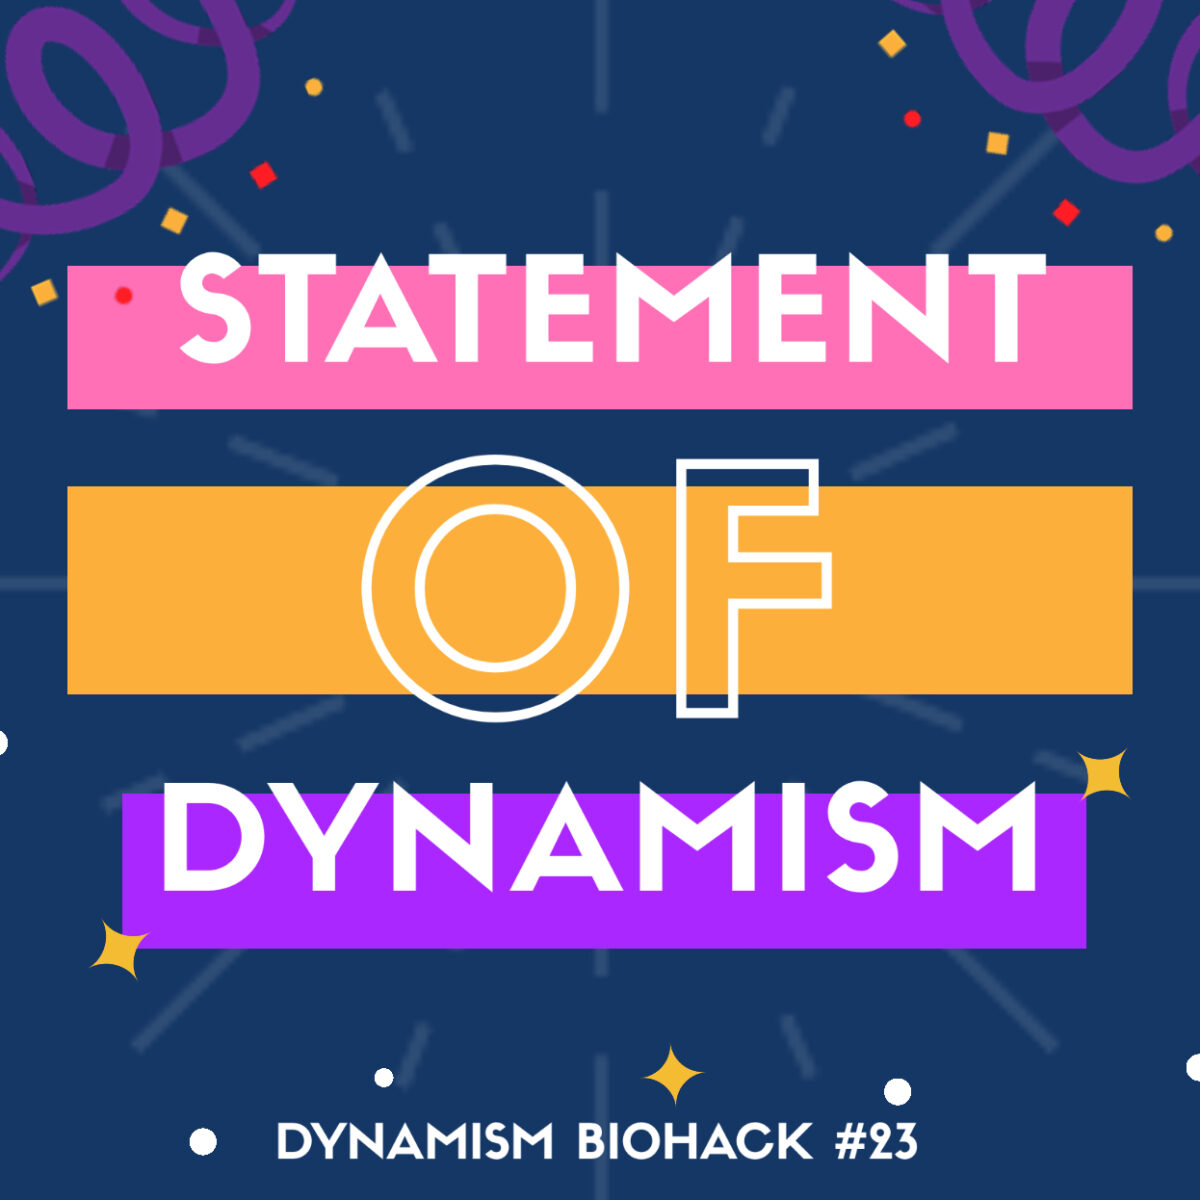 #23: Statement of Dynamism